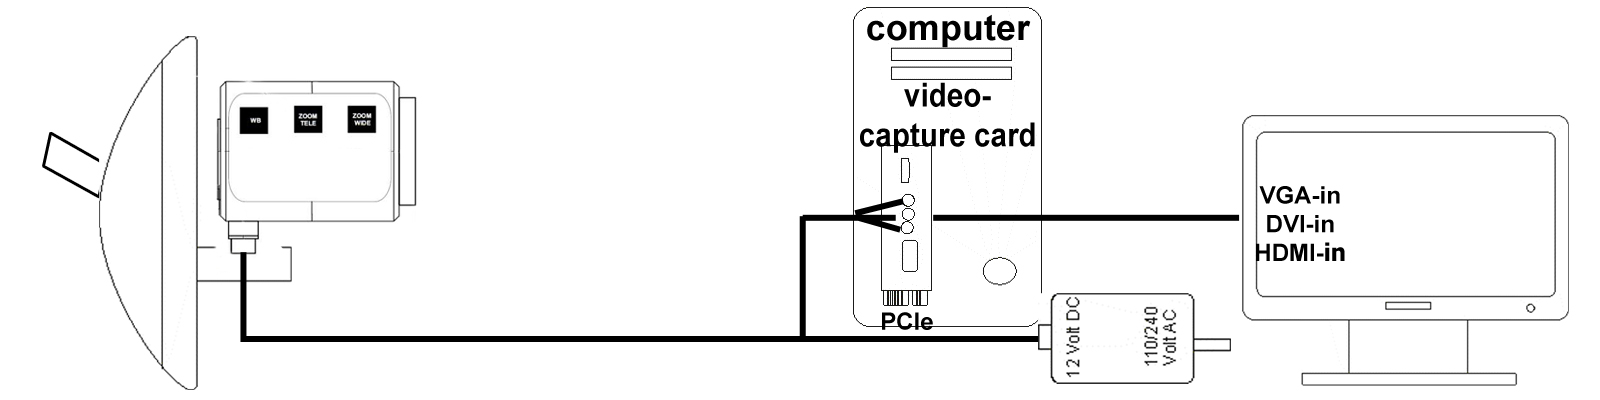 diagram thirdeye hd with computer and capture card